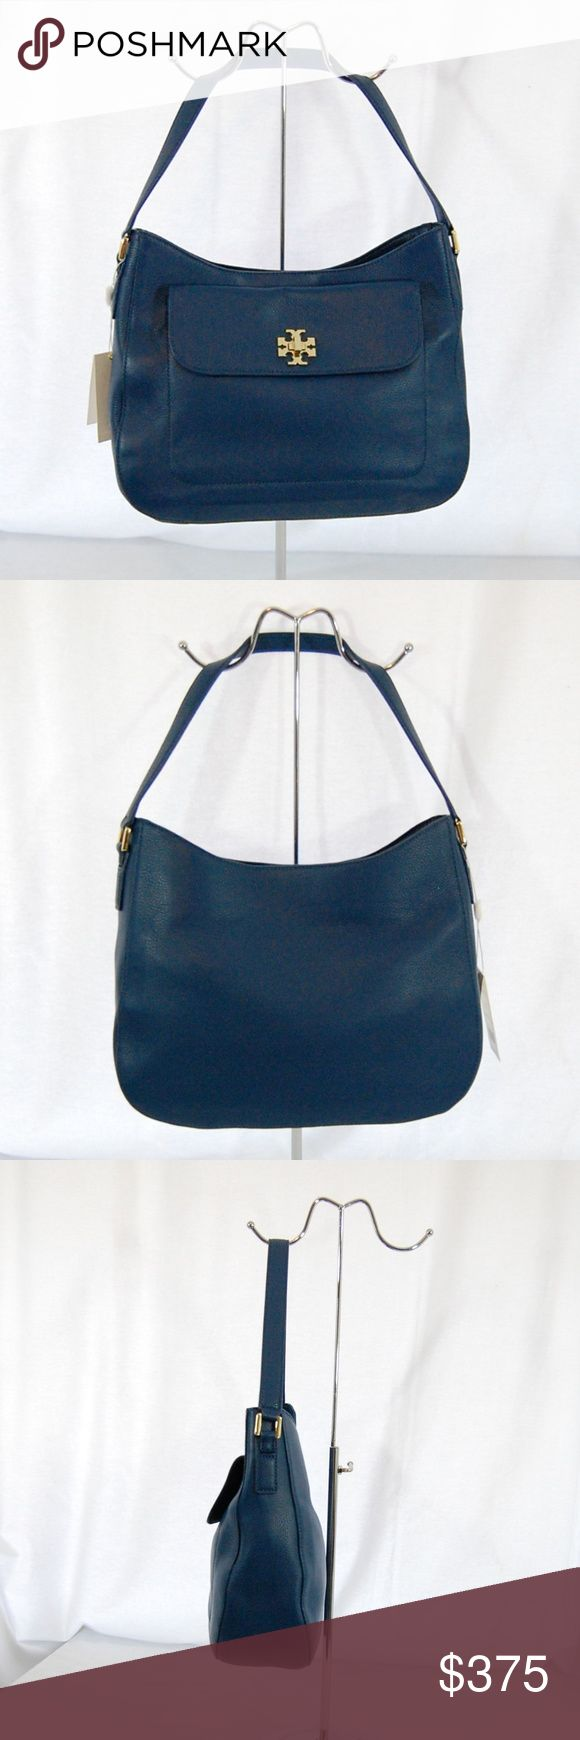 "NWT: Tory Burch Mercer Slouchy Hobo (Blue) Brand new with tags! Beautiful blue color called ""Tidal Wave""  ""Mercer Slouchy Hobo"" - single strap. Exterior pocket with a turn lock closure (in signature T logo in gold). Interior wall zip pocket, 2 slip pockets, and 1 snap close pocket. Spacious with some structure to it so you can find what you need.  Single snap top closure at the top.  Approximate measurements (taken stuffed): Length = 13"" Height = 9.5-11"" (lowest to highest points) Width = 4""…"